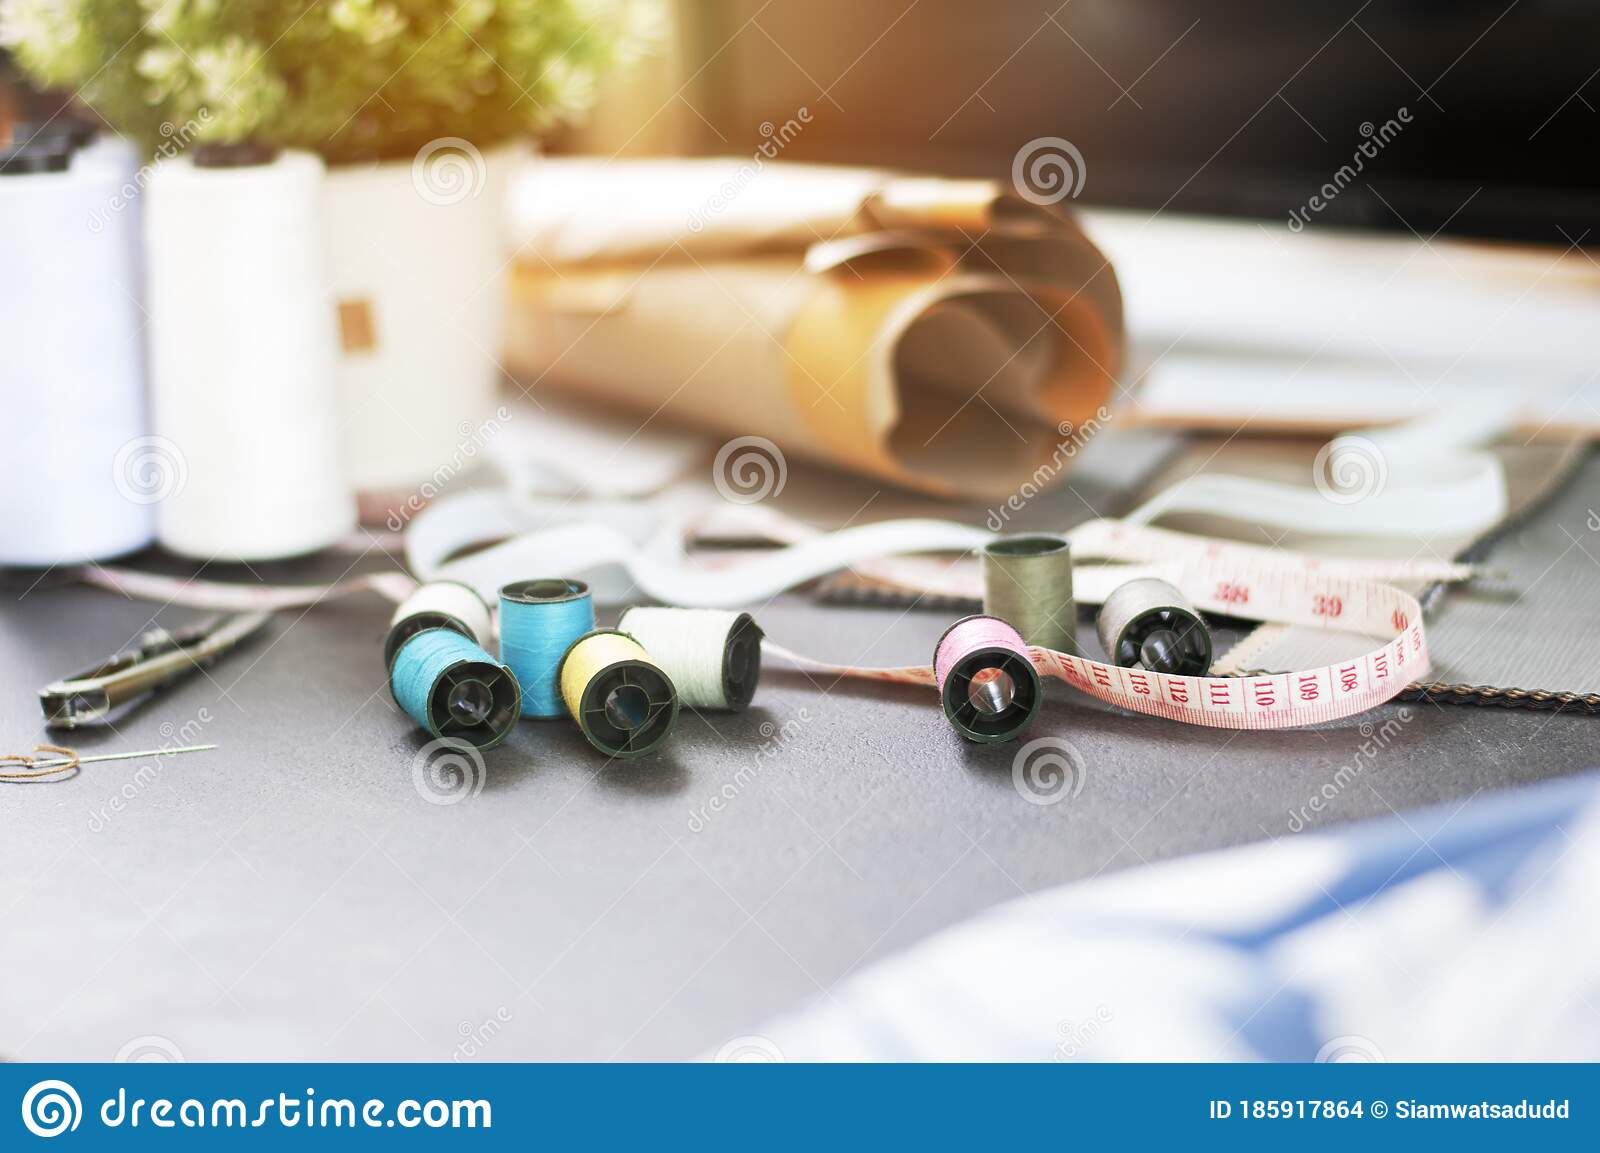 Fashion Industry Fashion Design Working Studio Set Of Tailor Accessories Stock Photo Image Of Female Clothes 185917864